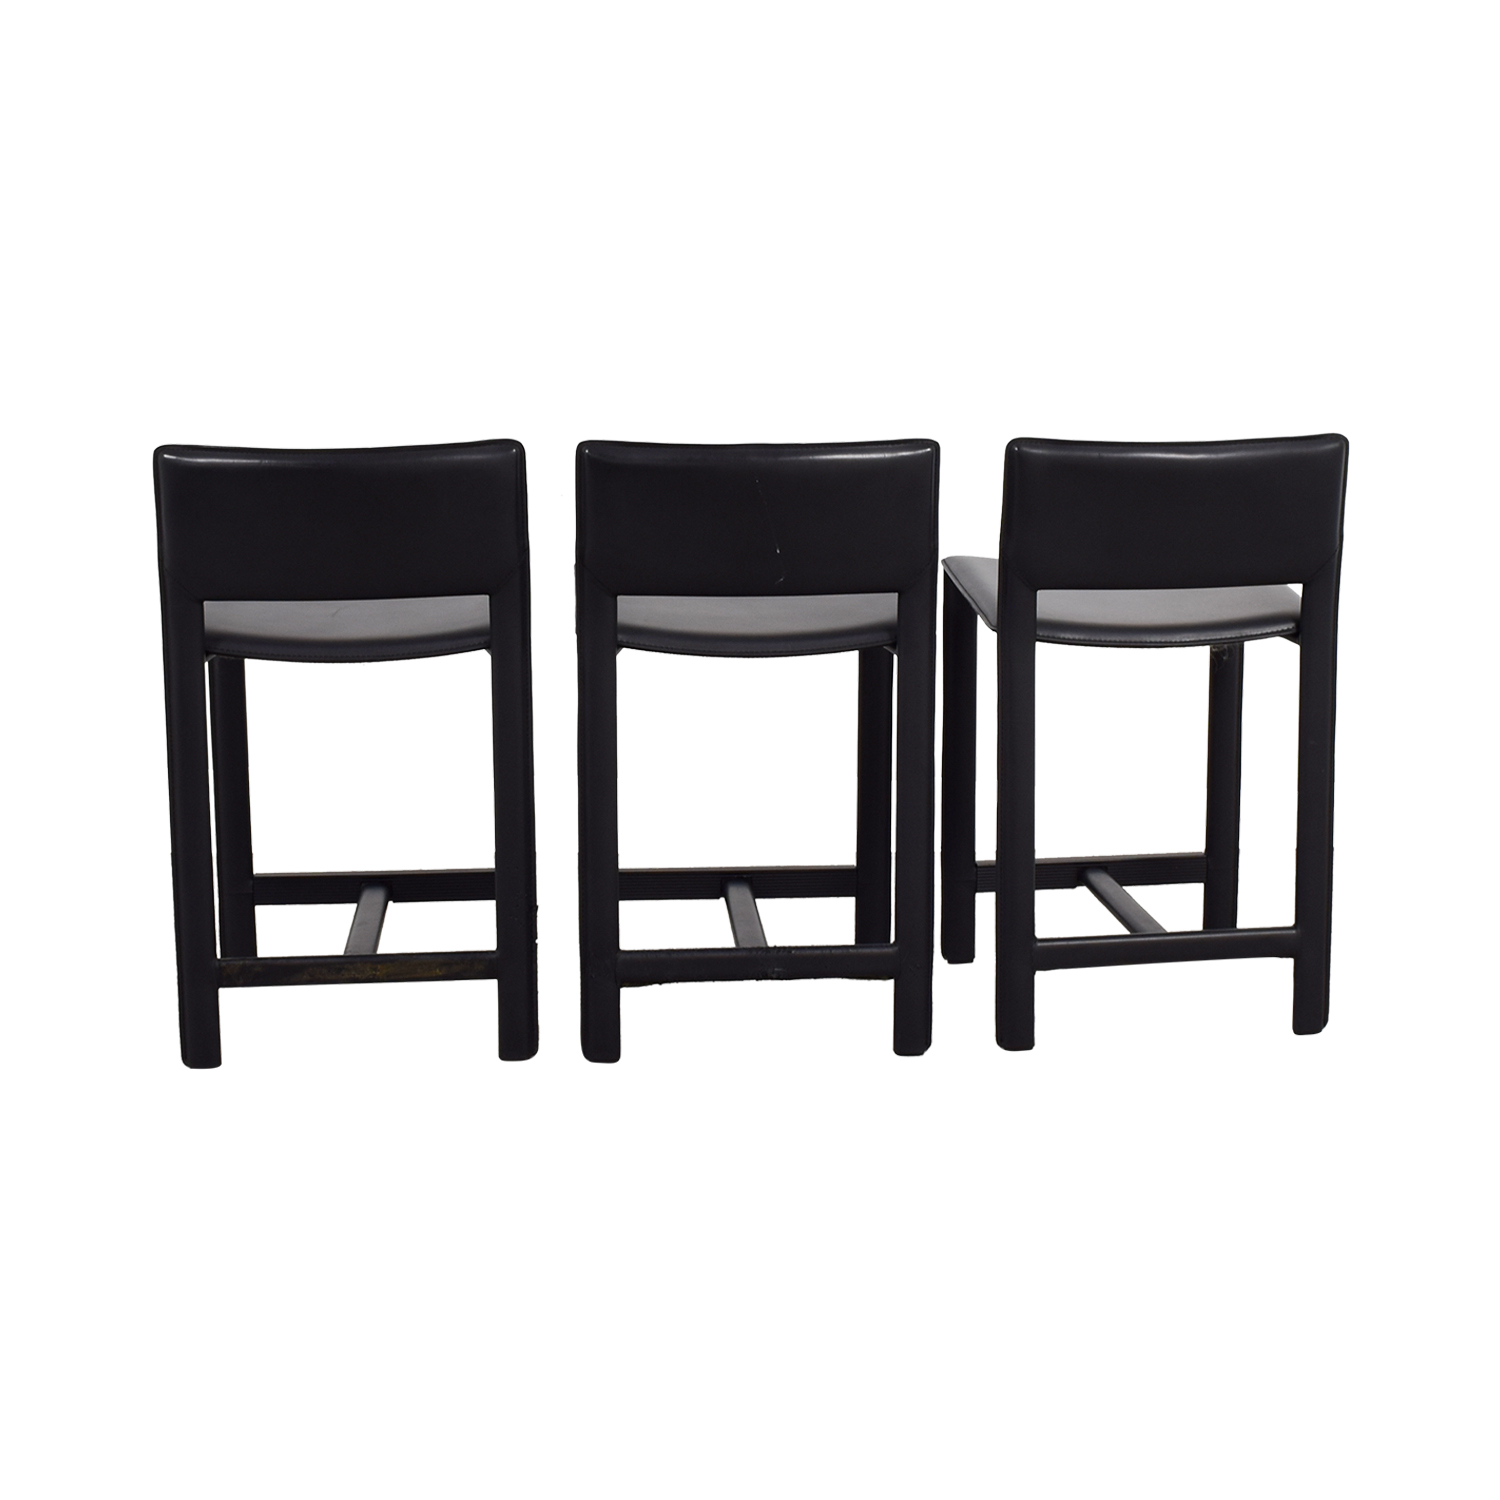 Room & Board Sava Black Leather Bar Stools / Chairs